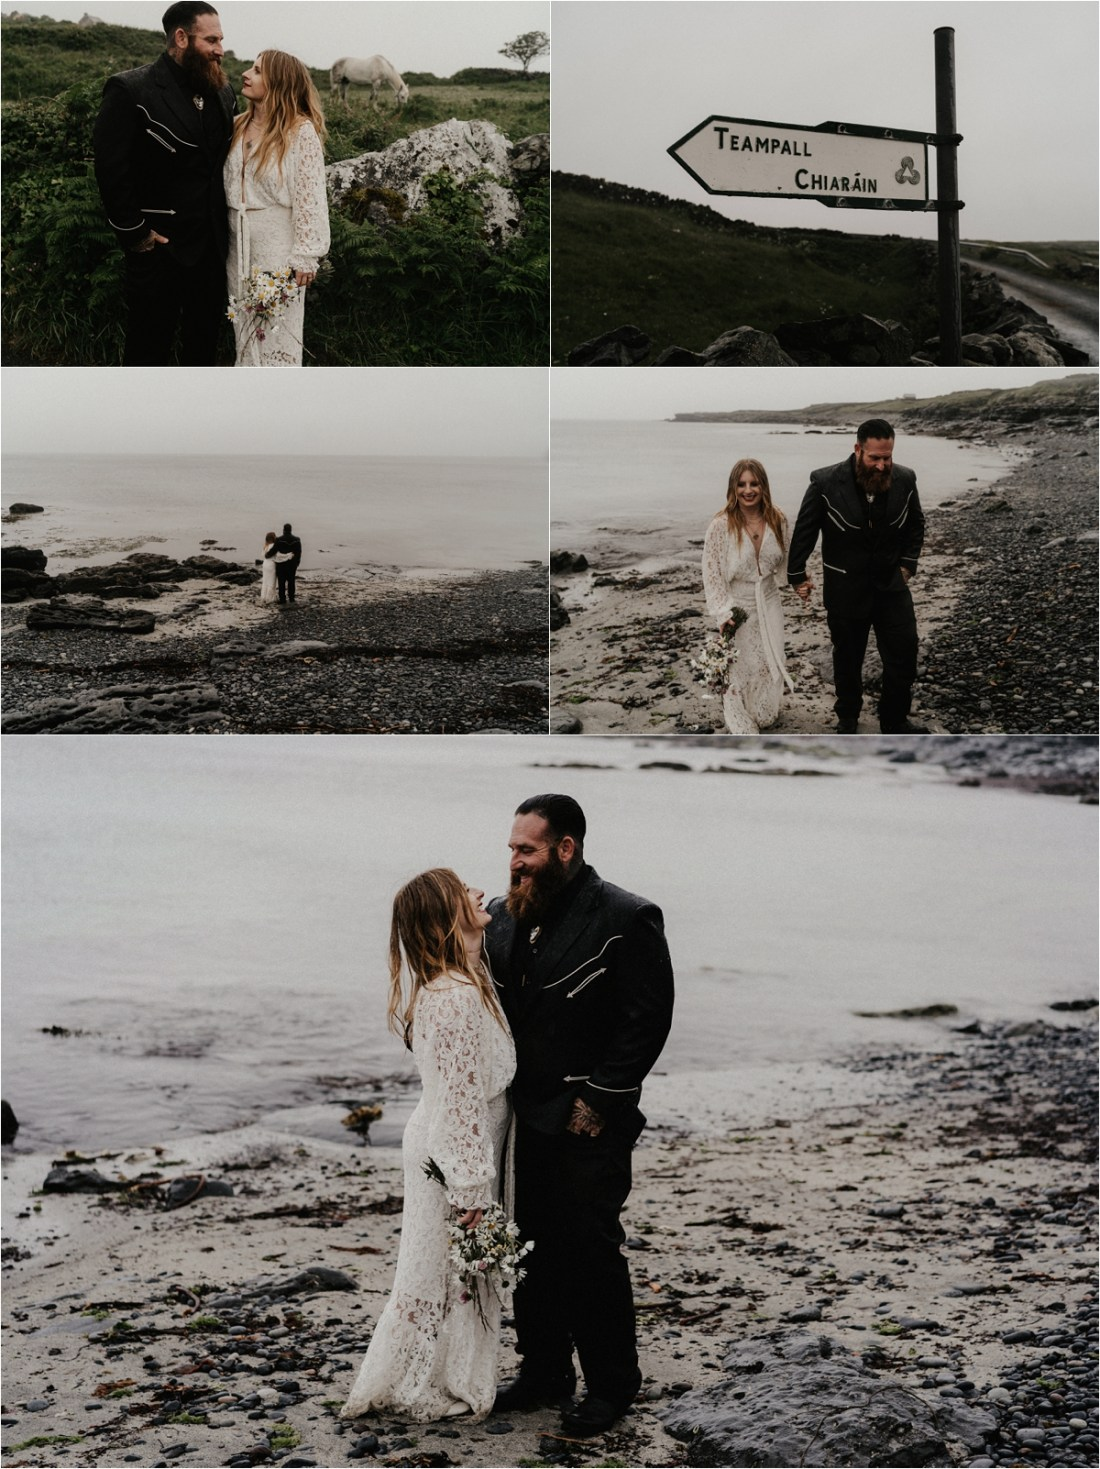 The bride and groom explore the beach in the Aran Islands in the rain. Photos by Emily Black Photography